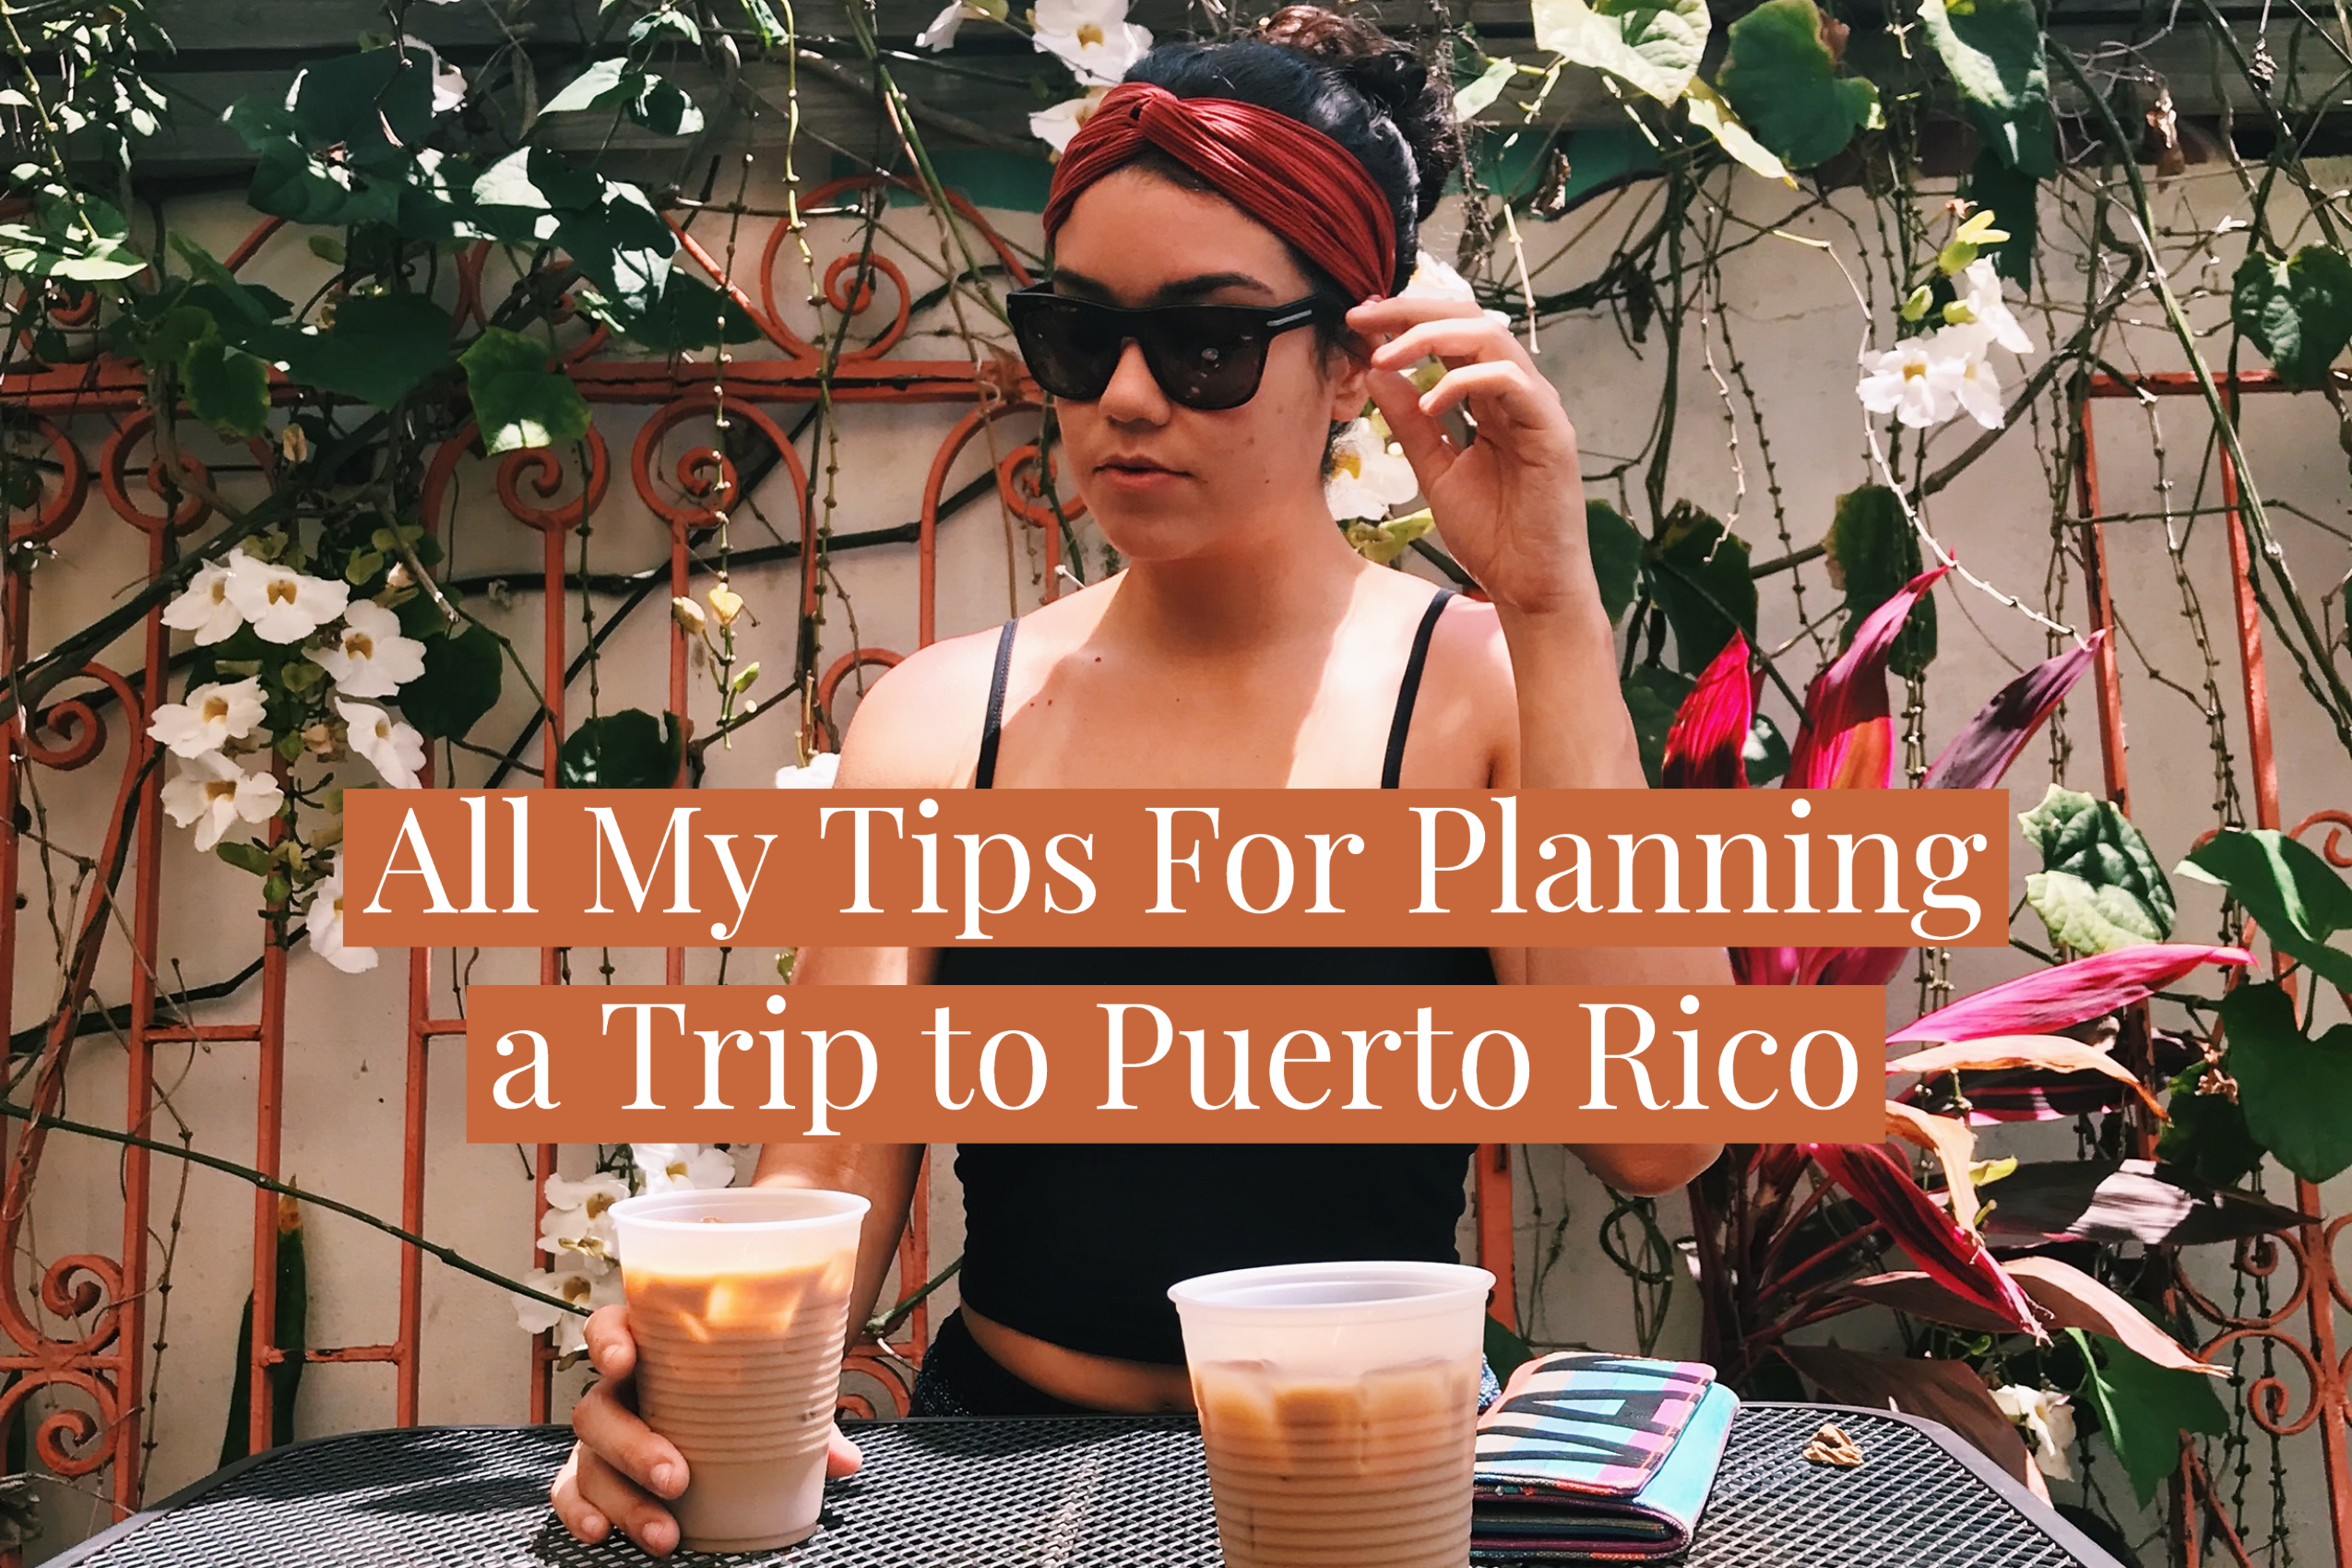 tips for planning a trip to puerto rico, girl sitting at coffee shop in the sun